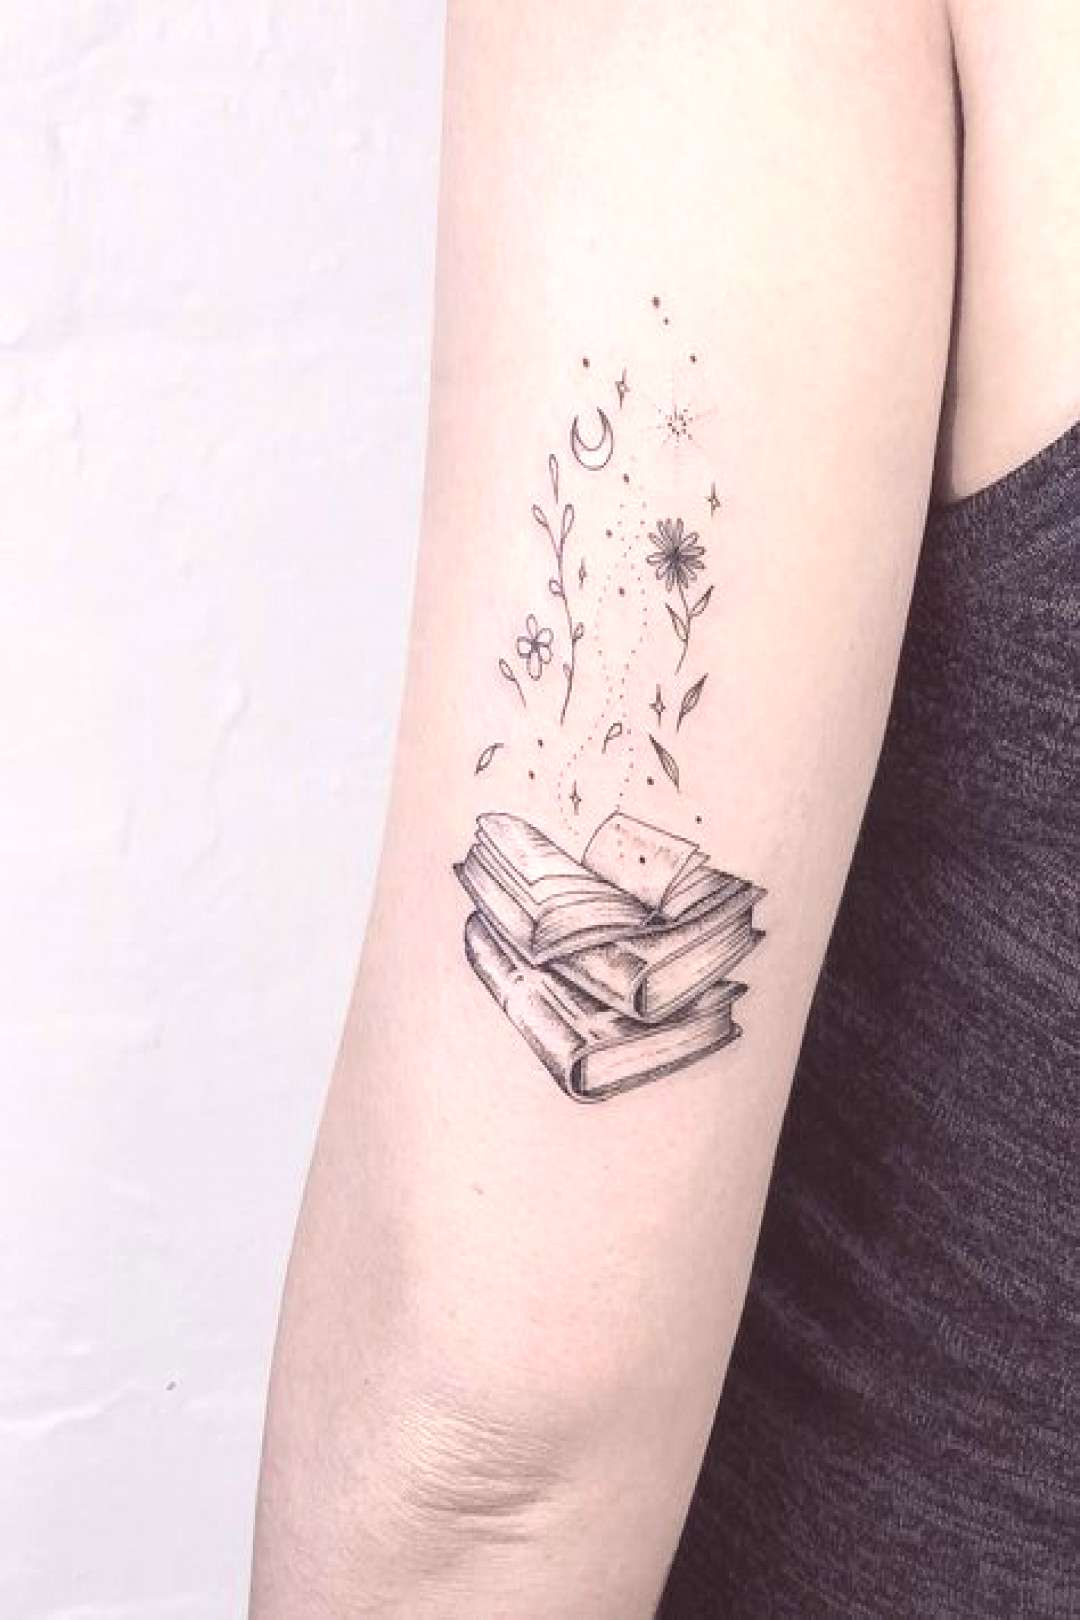 Awesome book tattoos for literature lovers - artists - Awesome book tattoos for literature lovers